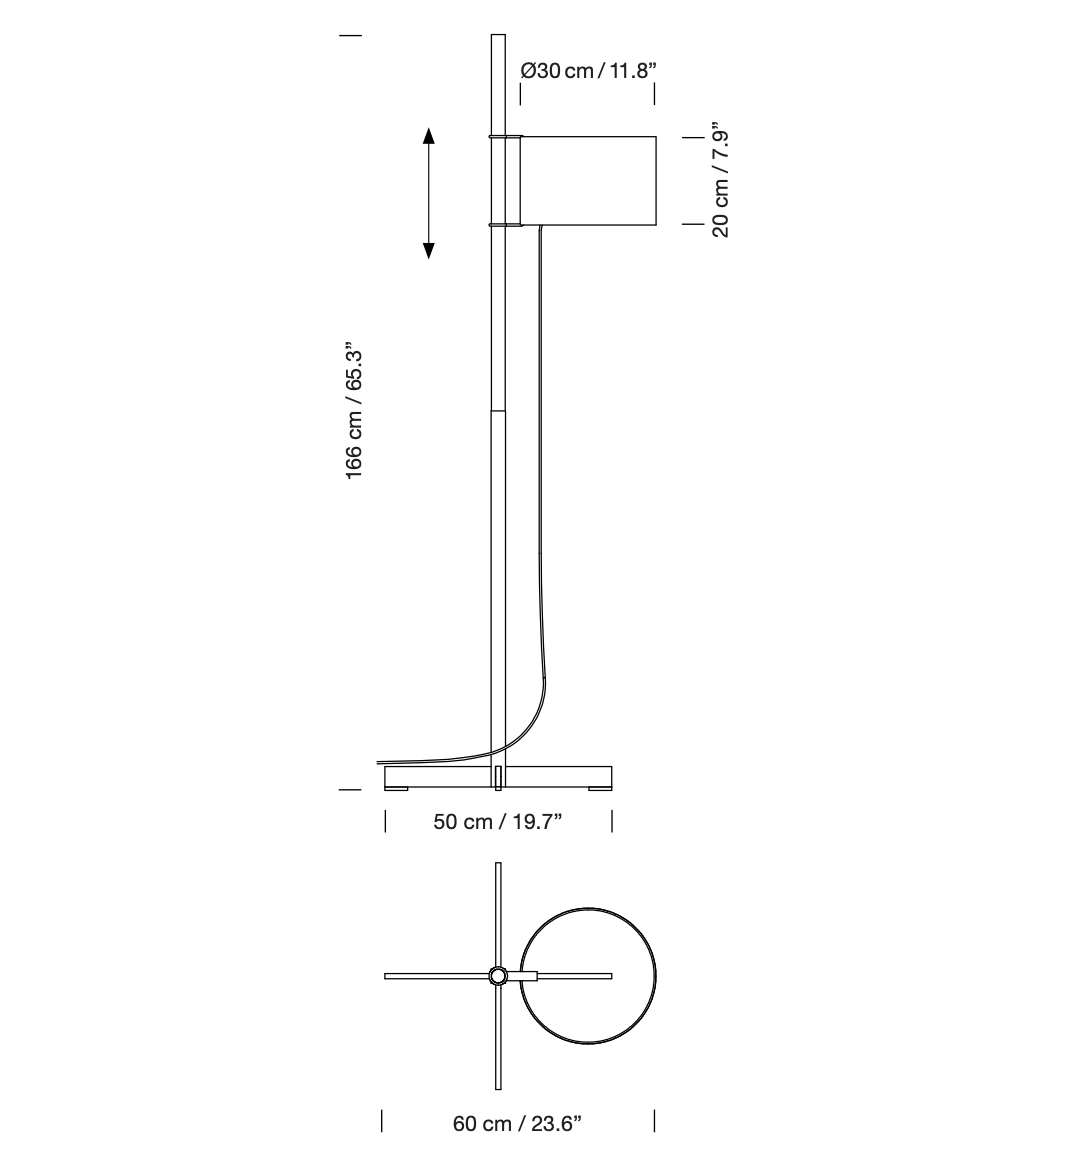 TMM Floor Lamp - <p>In an exquisite demonstration of formal serenity and functional efficiency, Miguel Milá brilliantly separated the three basic components of any lamp: the structure, the electrical components and the shade, that are easily assembled and maintained throughout its very long life. And becomes ever more beautiful with time.</p> <p>A cross-shaped base supports a square shaft that becomes circular in the middle, allowing the shade to be moved up and down. The shade's height is adjustable via a rubber band stopper. A genuine lesson in intelligence and good taste, making minimal use of components.</p>  | Matter of Stuff